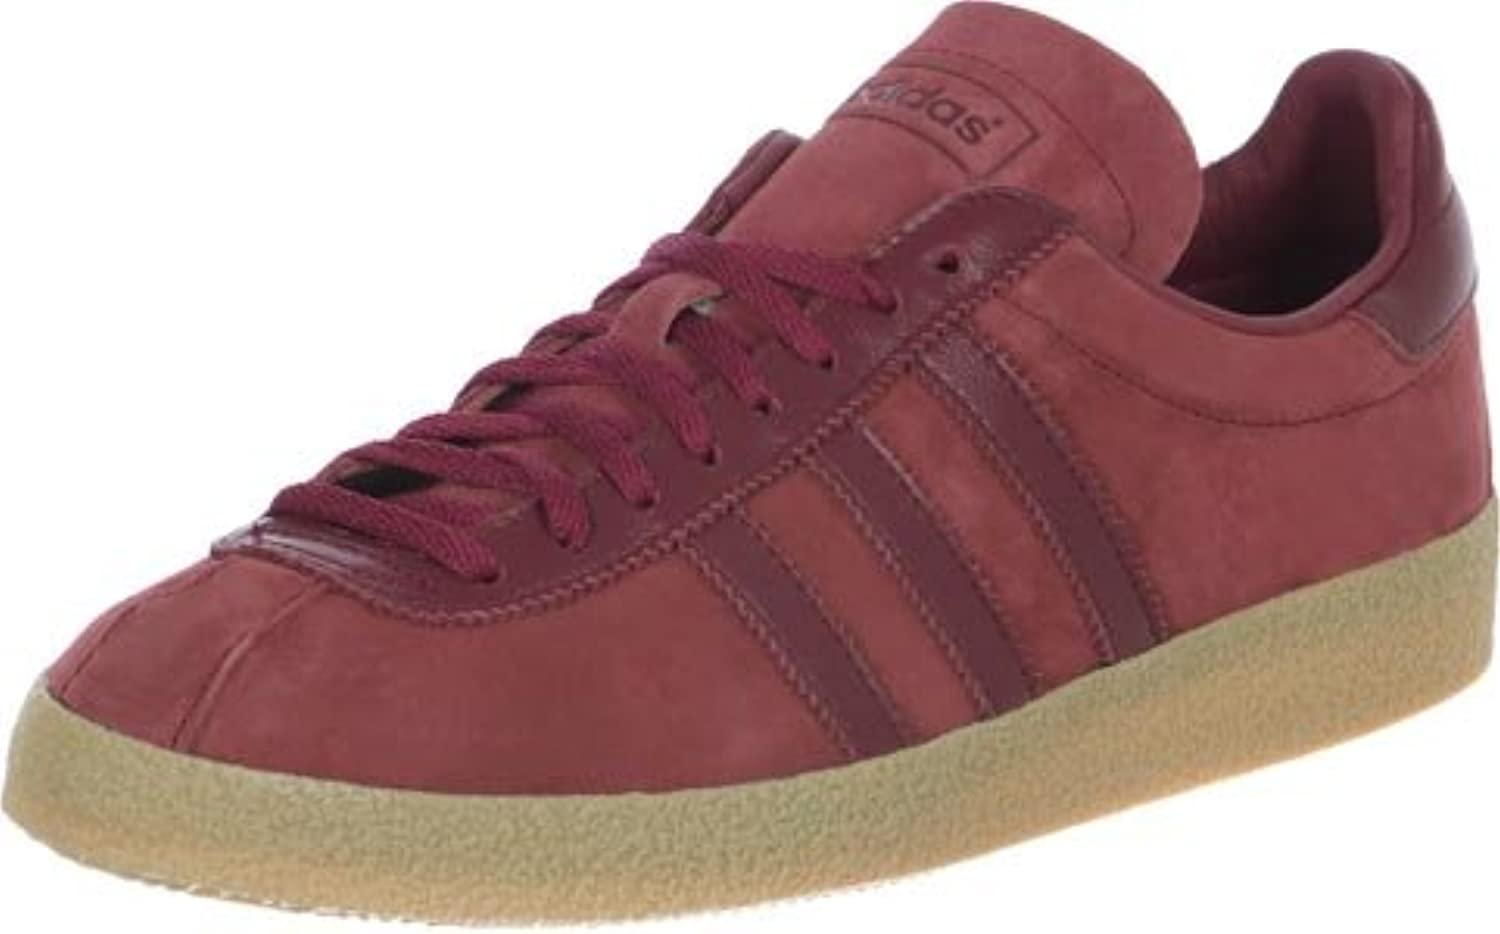 Adidas Topanga Trainers Maroon 6 Child UK